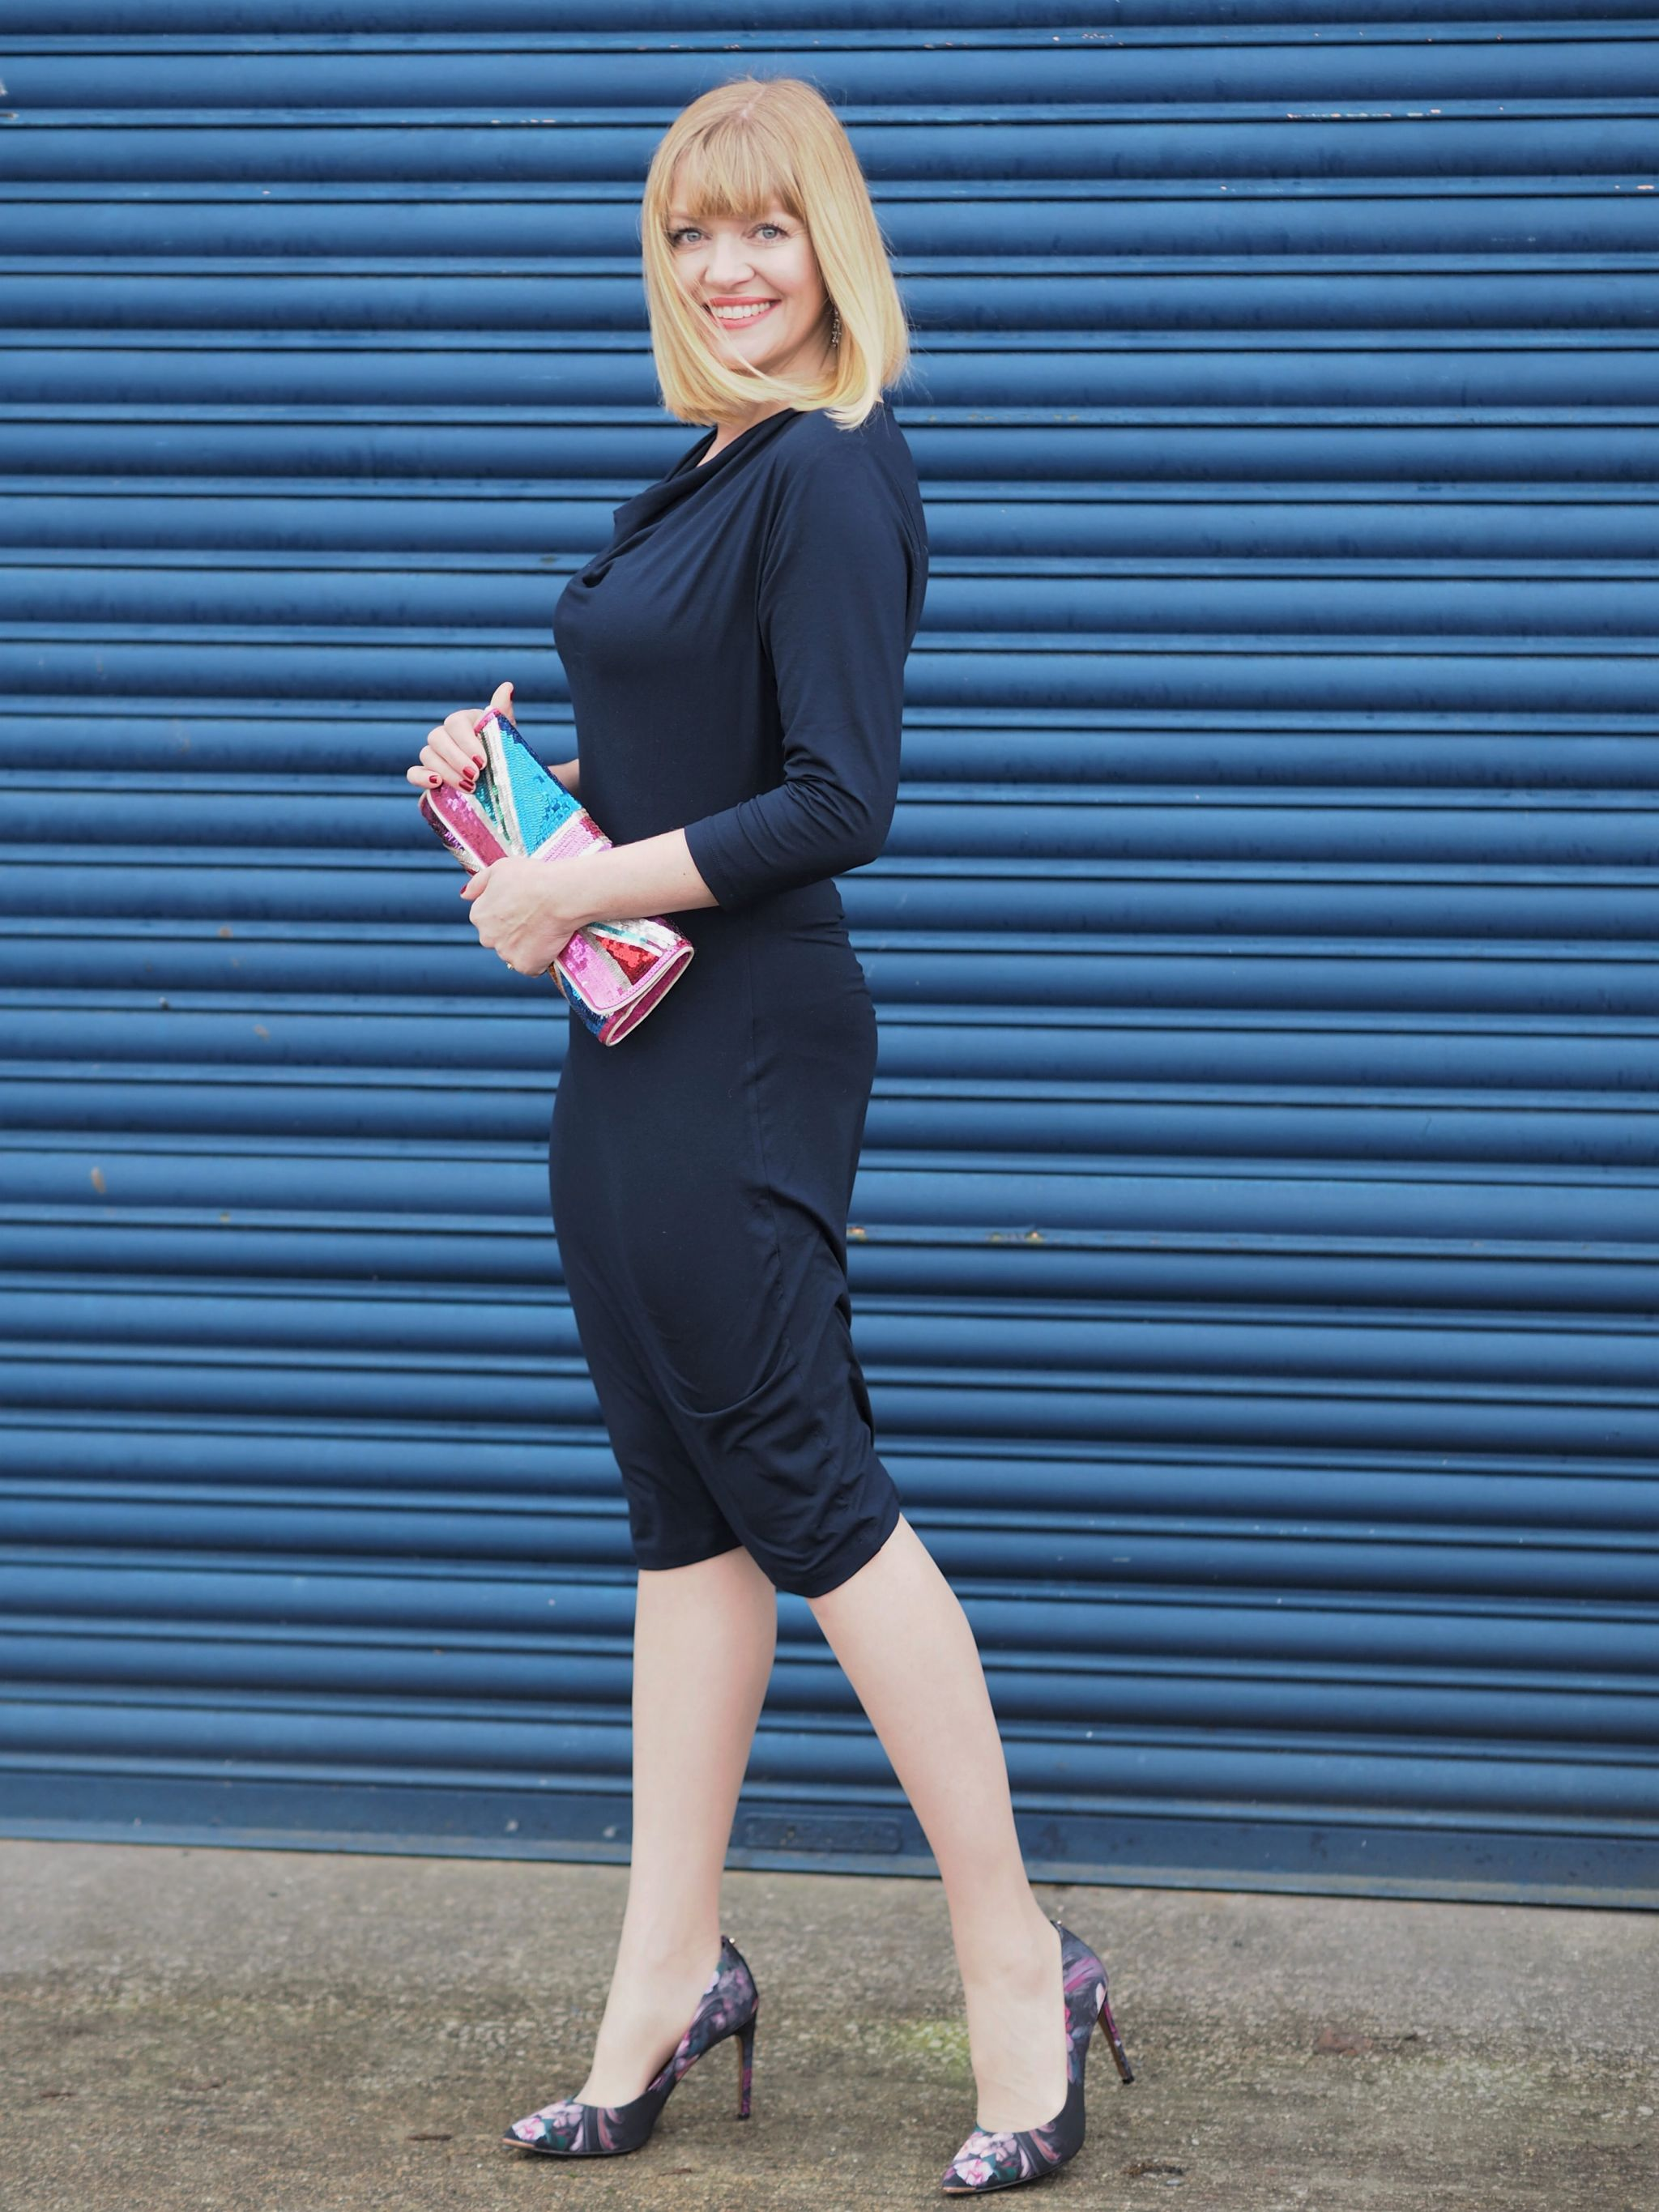 Over 40 blogger Lizzy wears navy cowl neck dress and floral court shoes